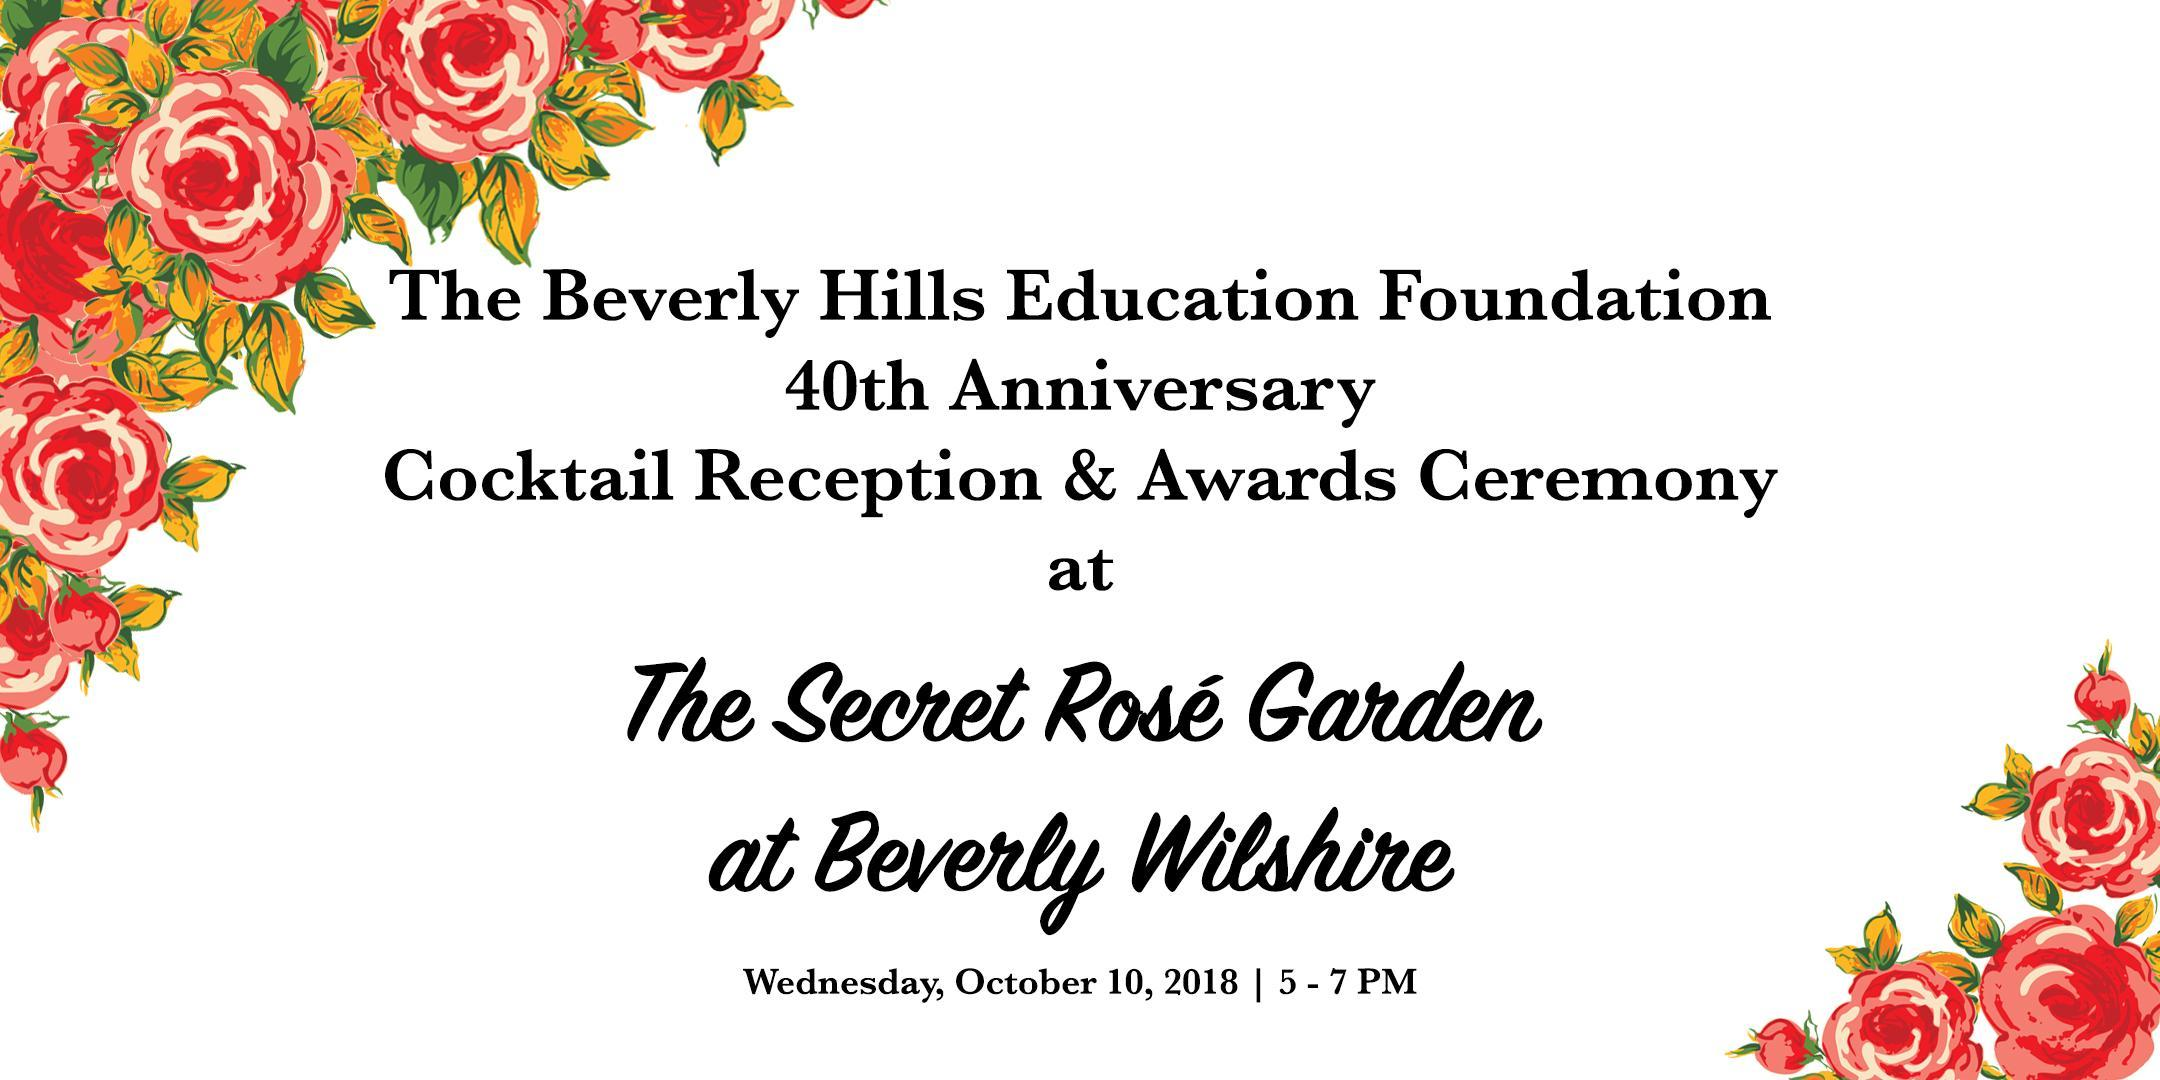 The BHEF 40th Anniversary Coctail Reception and Awards Ceremony at the Secret Rose Garden at Beverly Wilshire